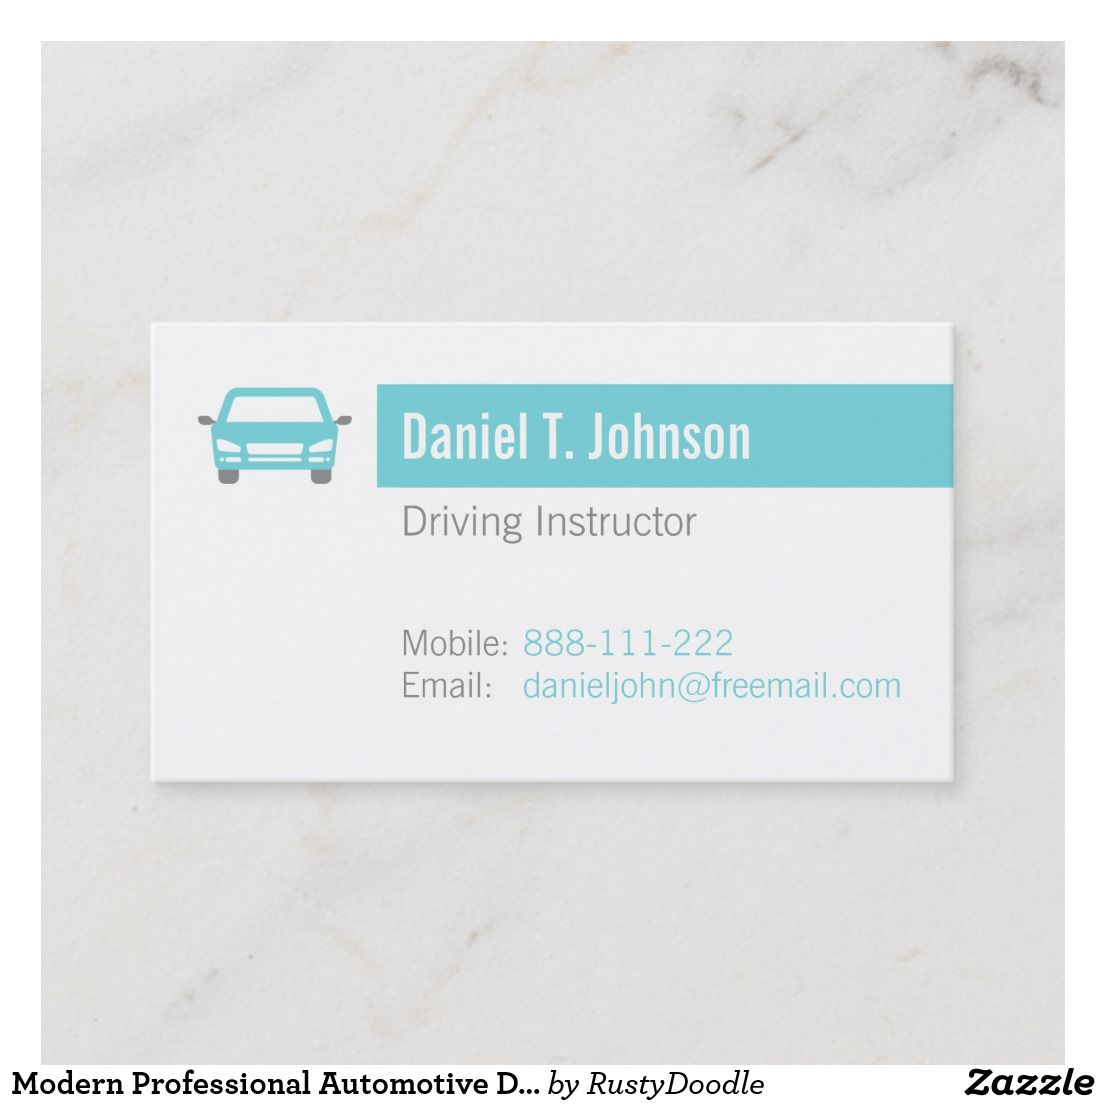 Modern Professional Automotive Driving Instructor Business Card Zazzle Com Driving Instructor Business Card Modern Cleaning Business Cards